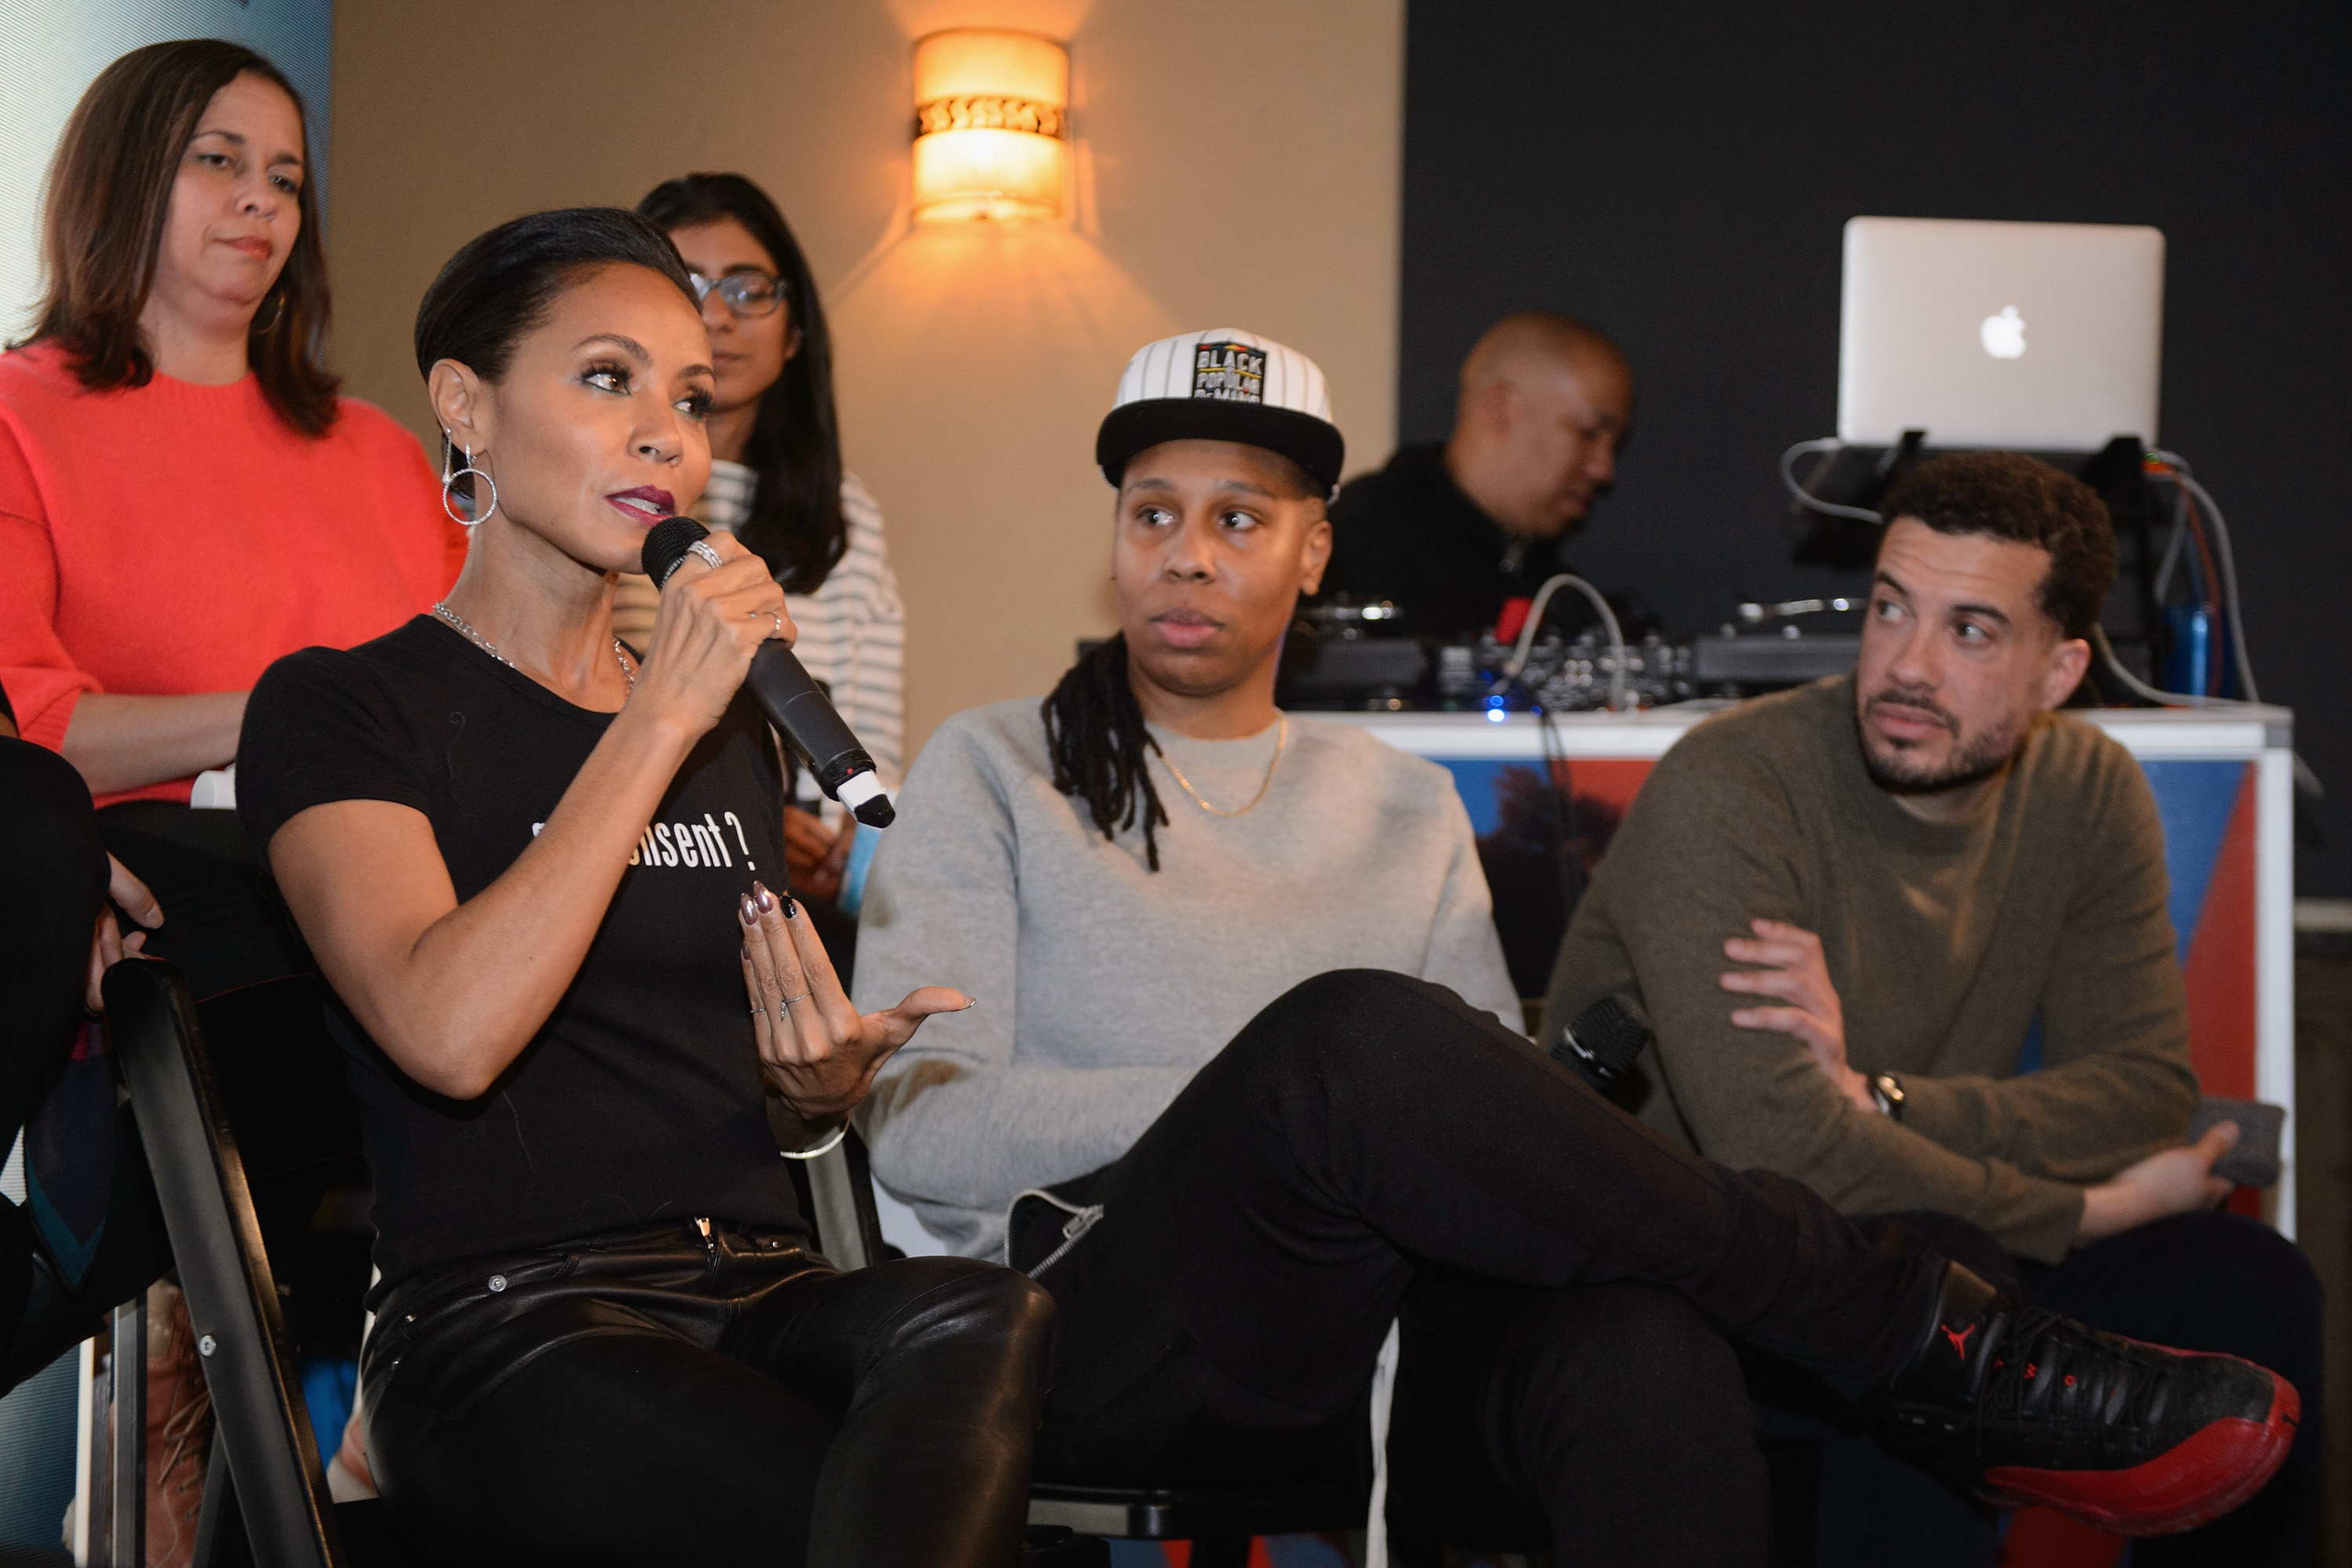 The Will and Jada Smith Family Foundation presents Broadening the Lens: Perspective on Diverse Storytelling